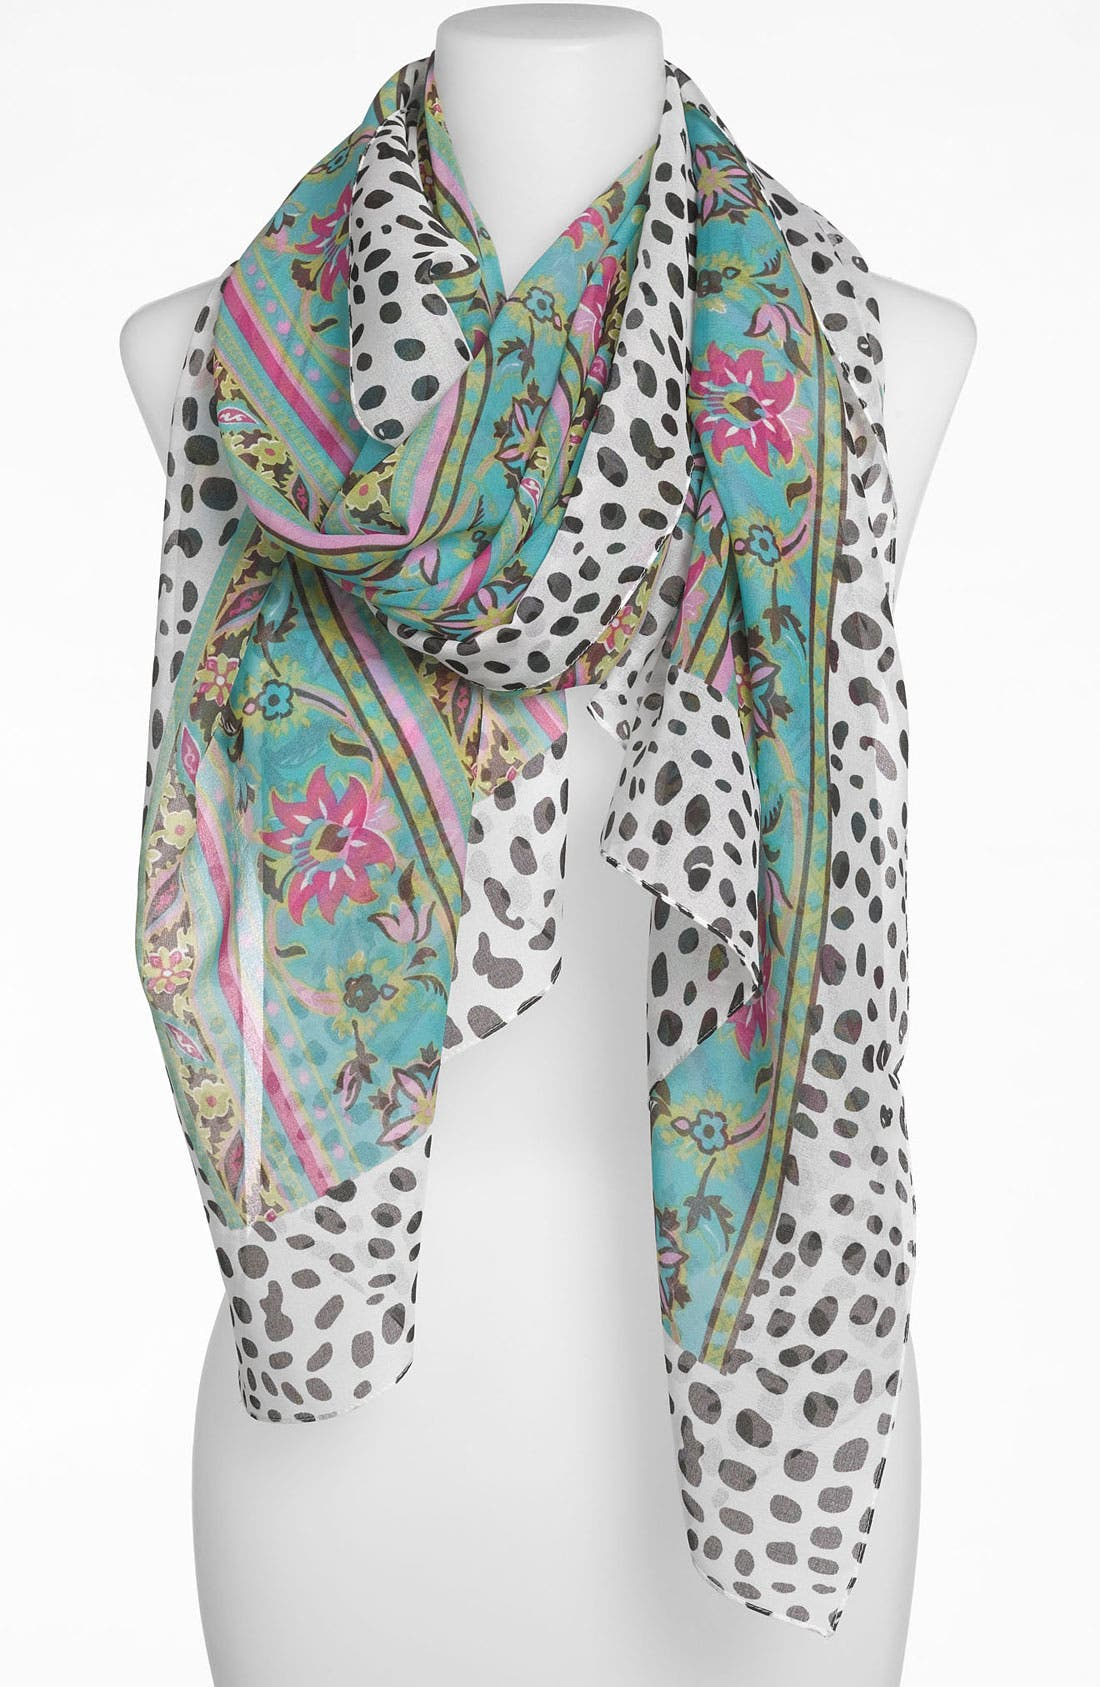 Alternate Image 1 Selected - Nordstrom 'Flowers & Spots' Scarf